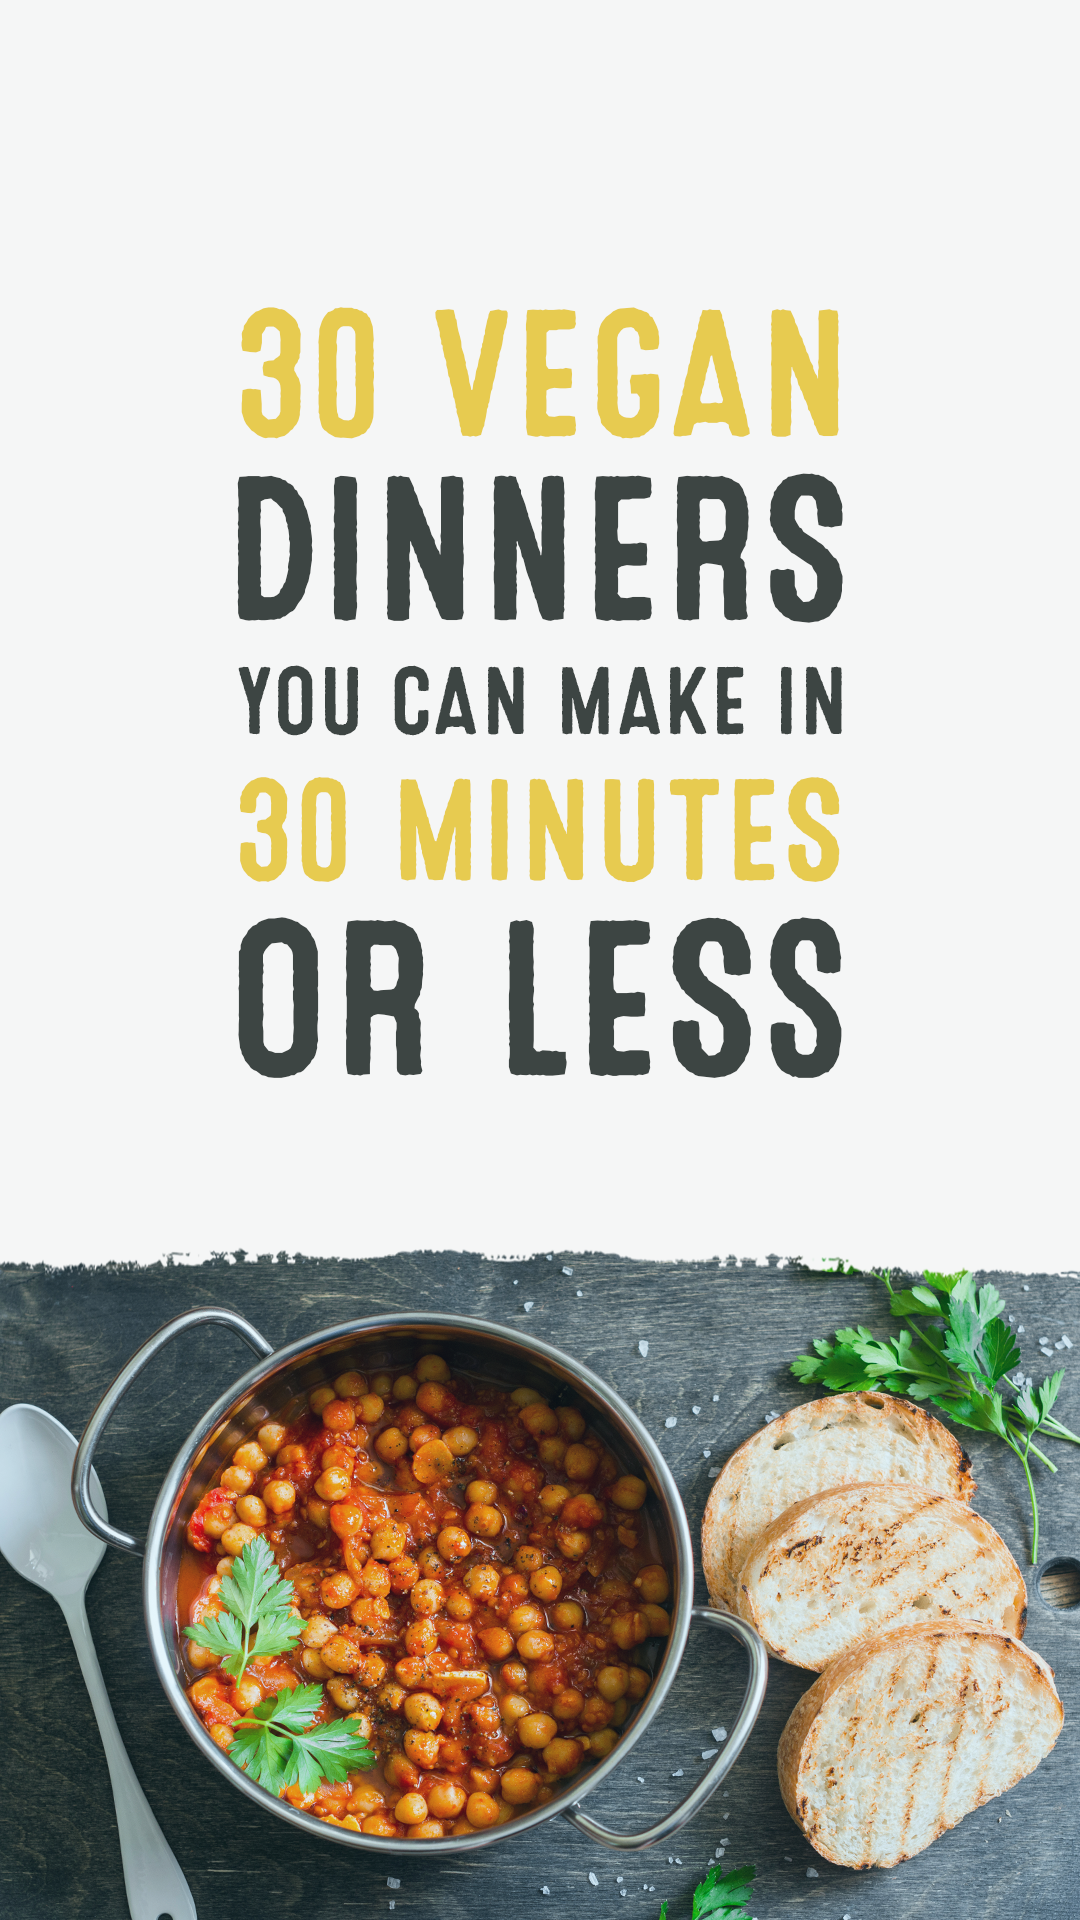 30 Vegan Dinners You Can Make In 30 Minutes Or Less The